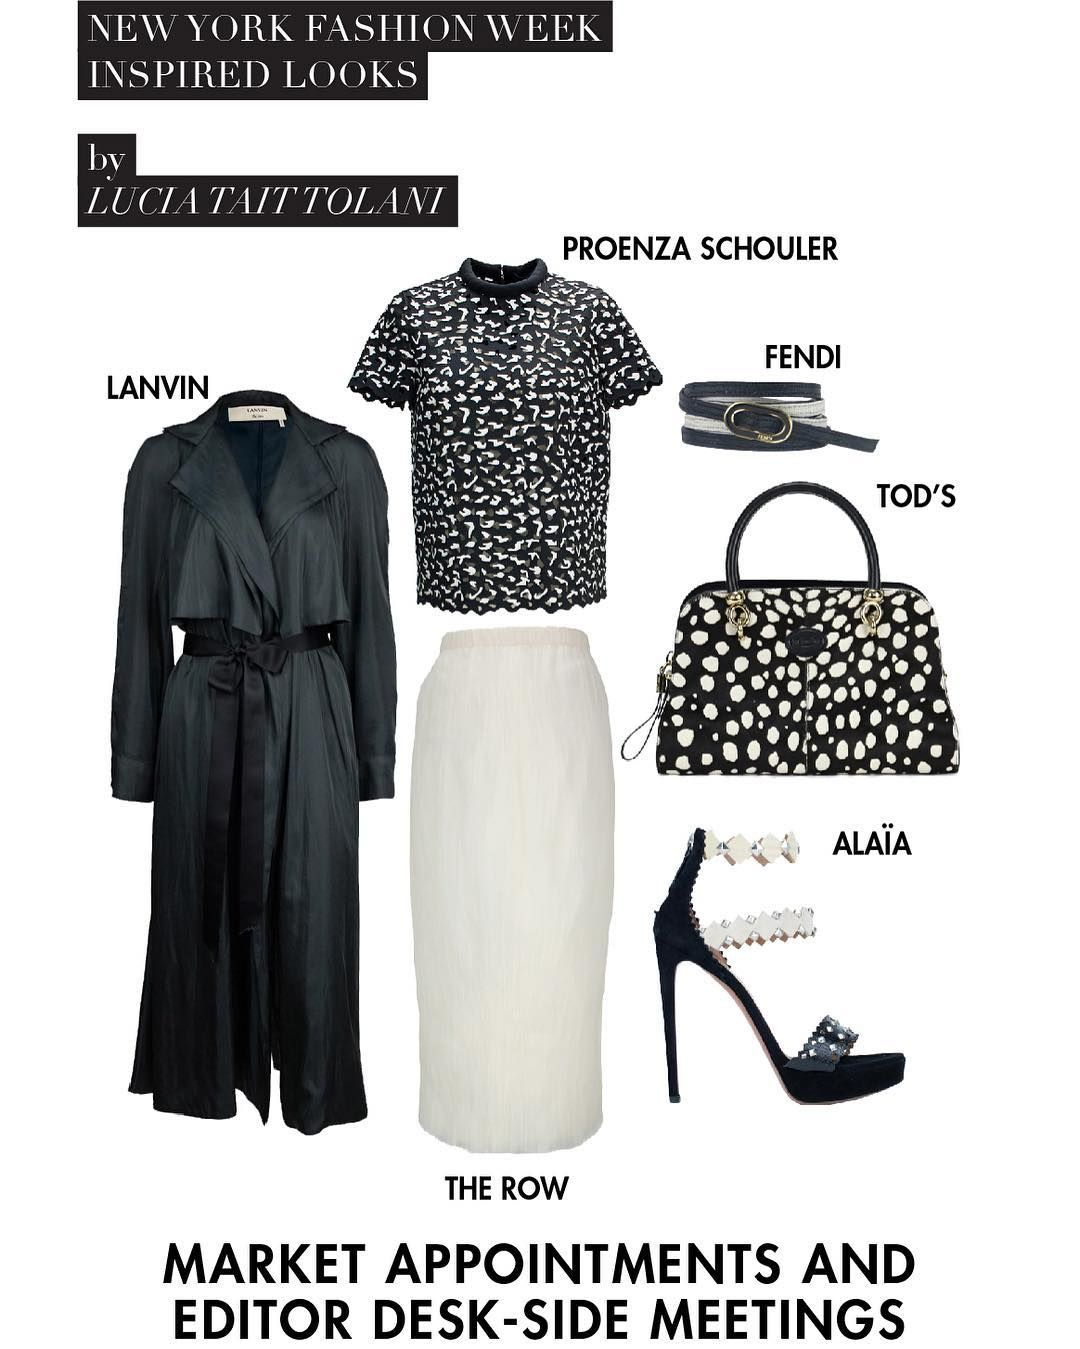 """NYFW inspired looks by @luciataittolani - for those important """"market appointments & editor desk-side meetings"""". Let the excitement of Fashion Week begin! Trend link in bio. #Lanvin (http://thehula.com/lanvin-outerwear-1174) #ProenzaSchouler (http://thehula.com/proenzaschouler-top-812) #TheRow (http://thehula.com/therow-skirt-1200) #Fendi (http://thehula.com/fendi-jewellery-1437) #Tods (http://thehula.com/tods-shoulderbag-98) #Alaïa (http://thehula.com/alaa-pumps-1450)"""